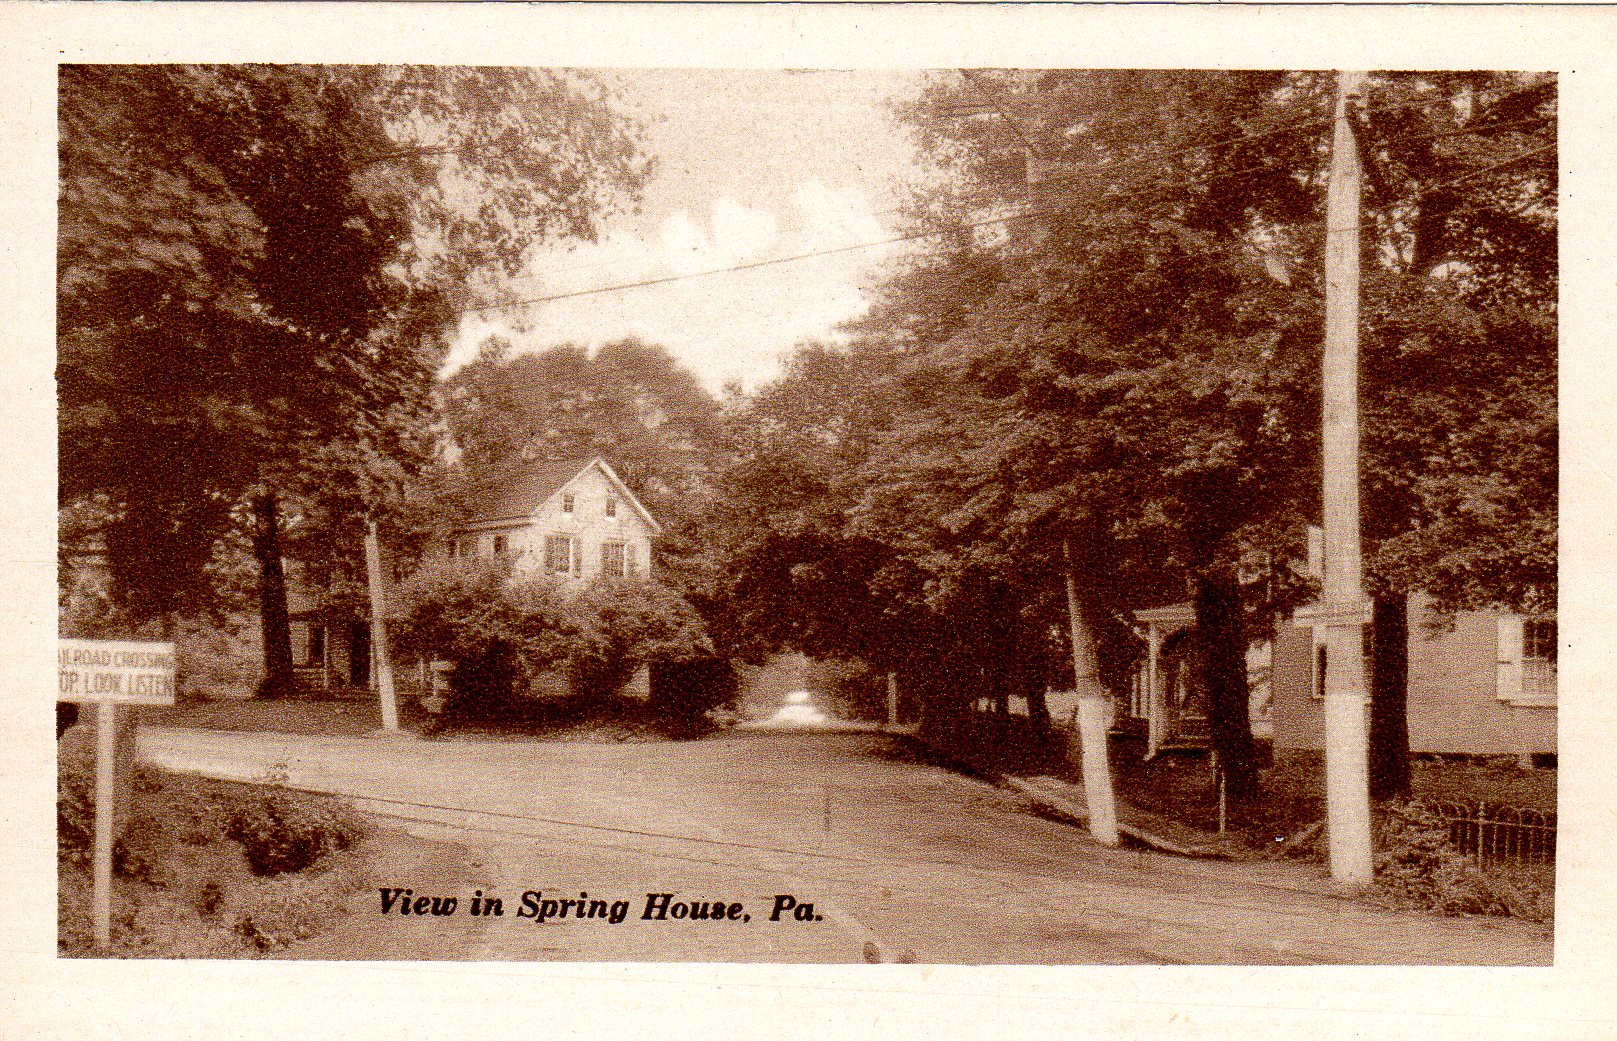 Post Card Collection (E Simon)_2682_75_View in Spring House, Pa